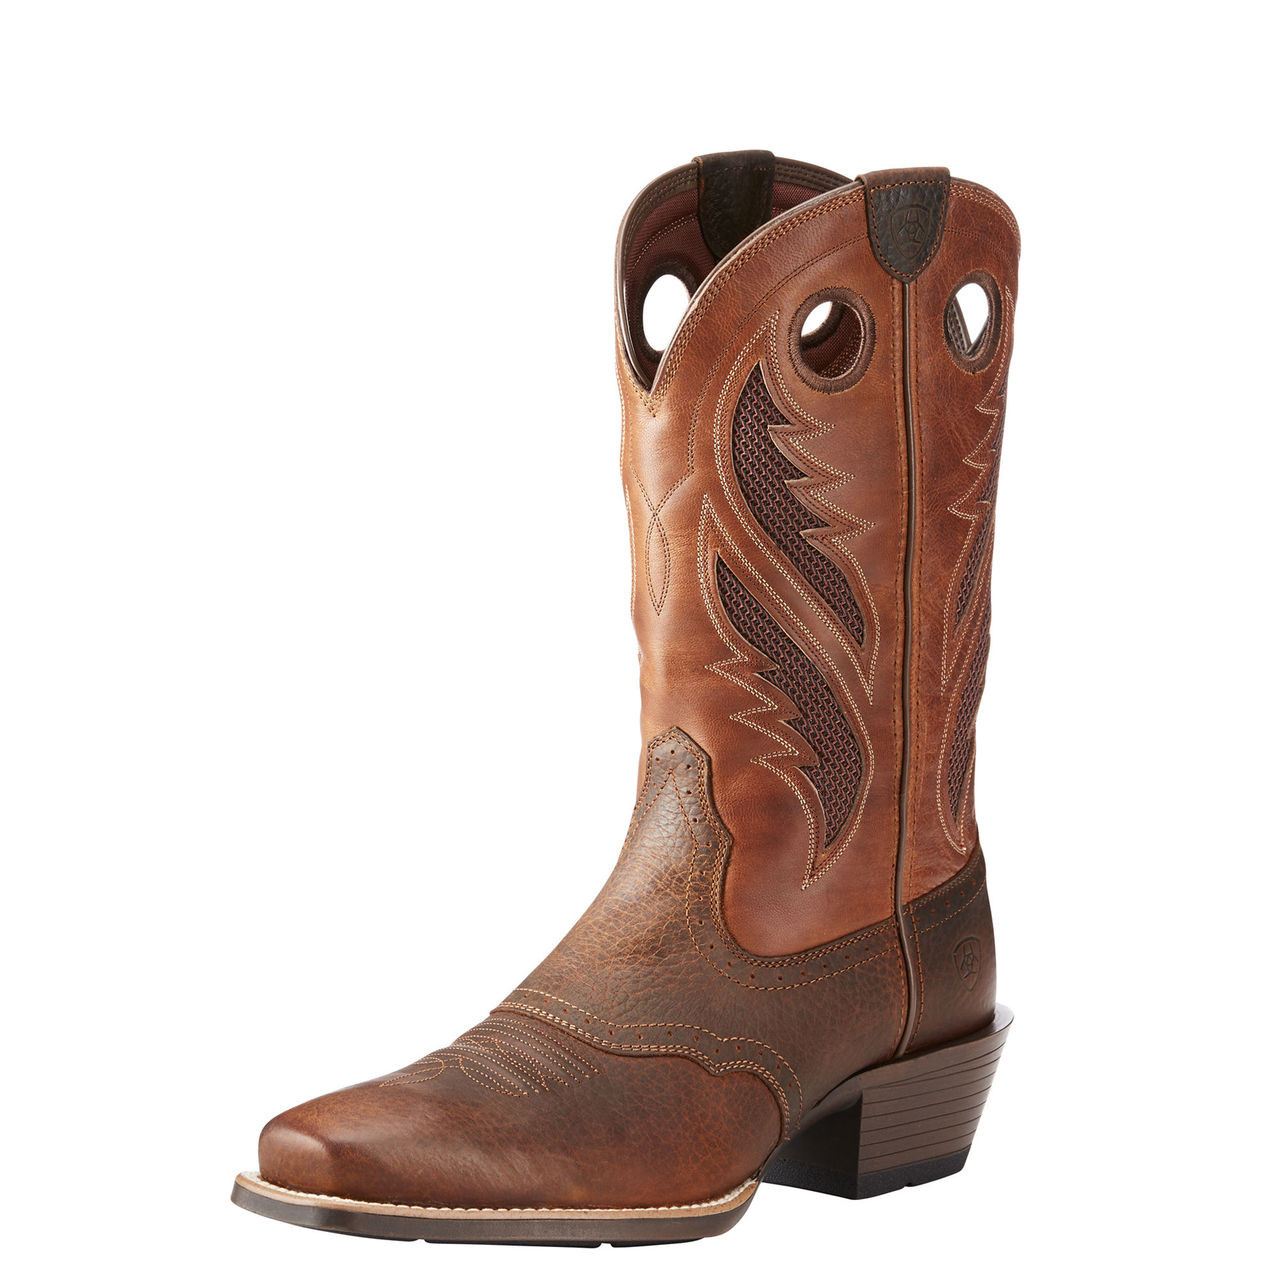 aa9d0137872 MEN'S ARIAT BOOTS VENTTEK™ NARROW SQUARE TOE ULTRA BROWN OILED ROWDY ...